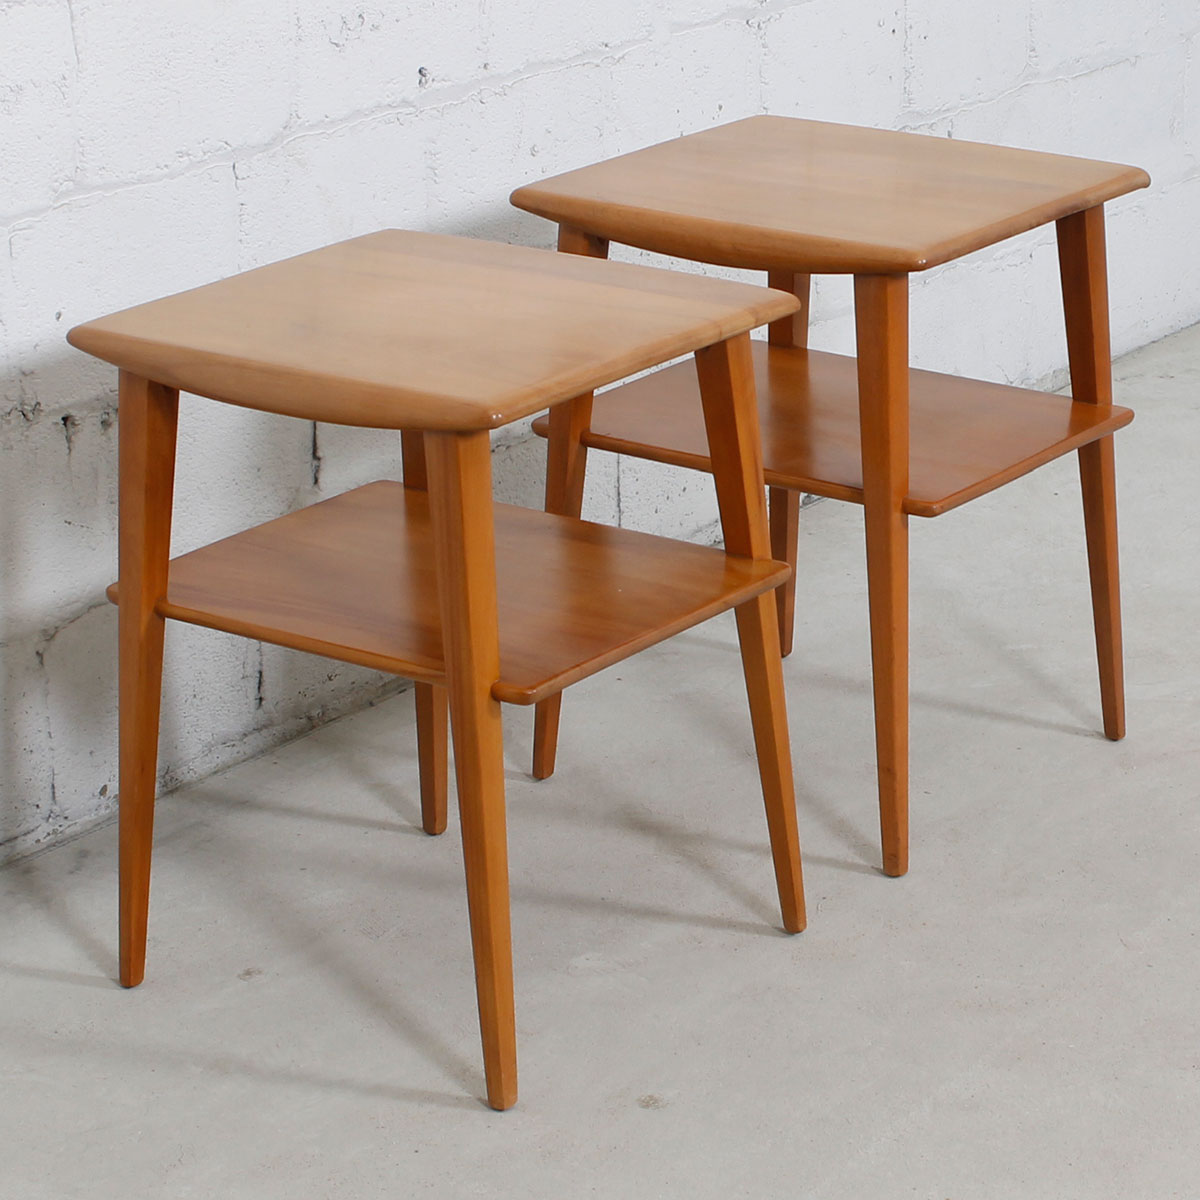 Modern mobler pair of tall heywood wakefield splayed leg side tables geotapseo Image collections